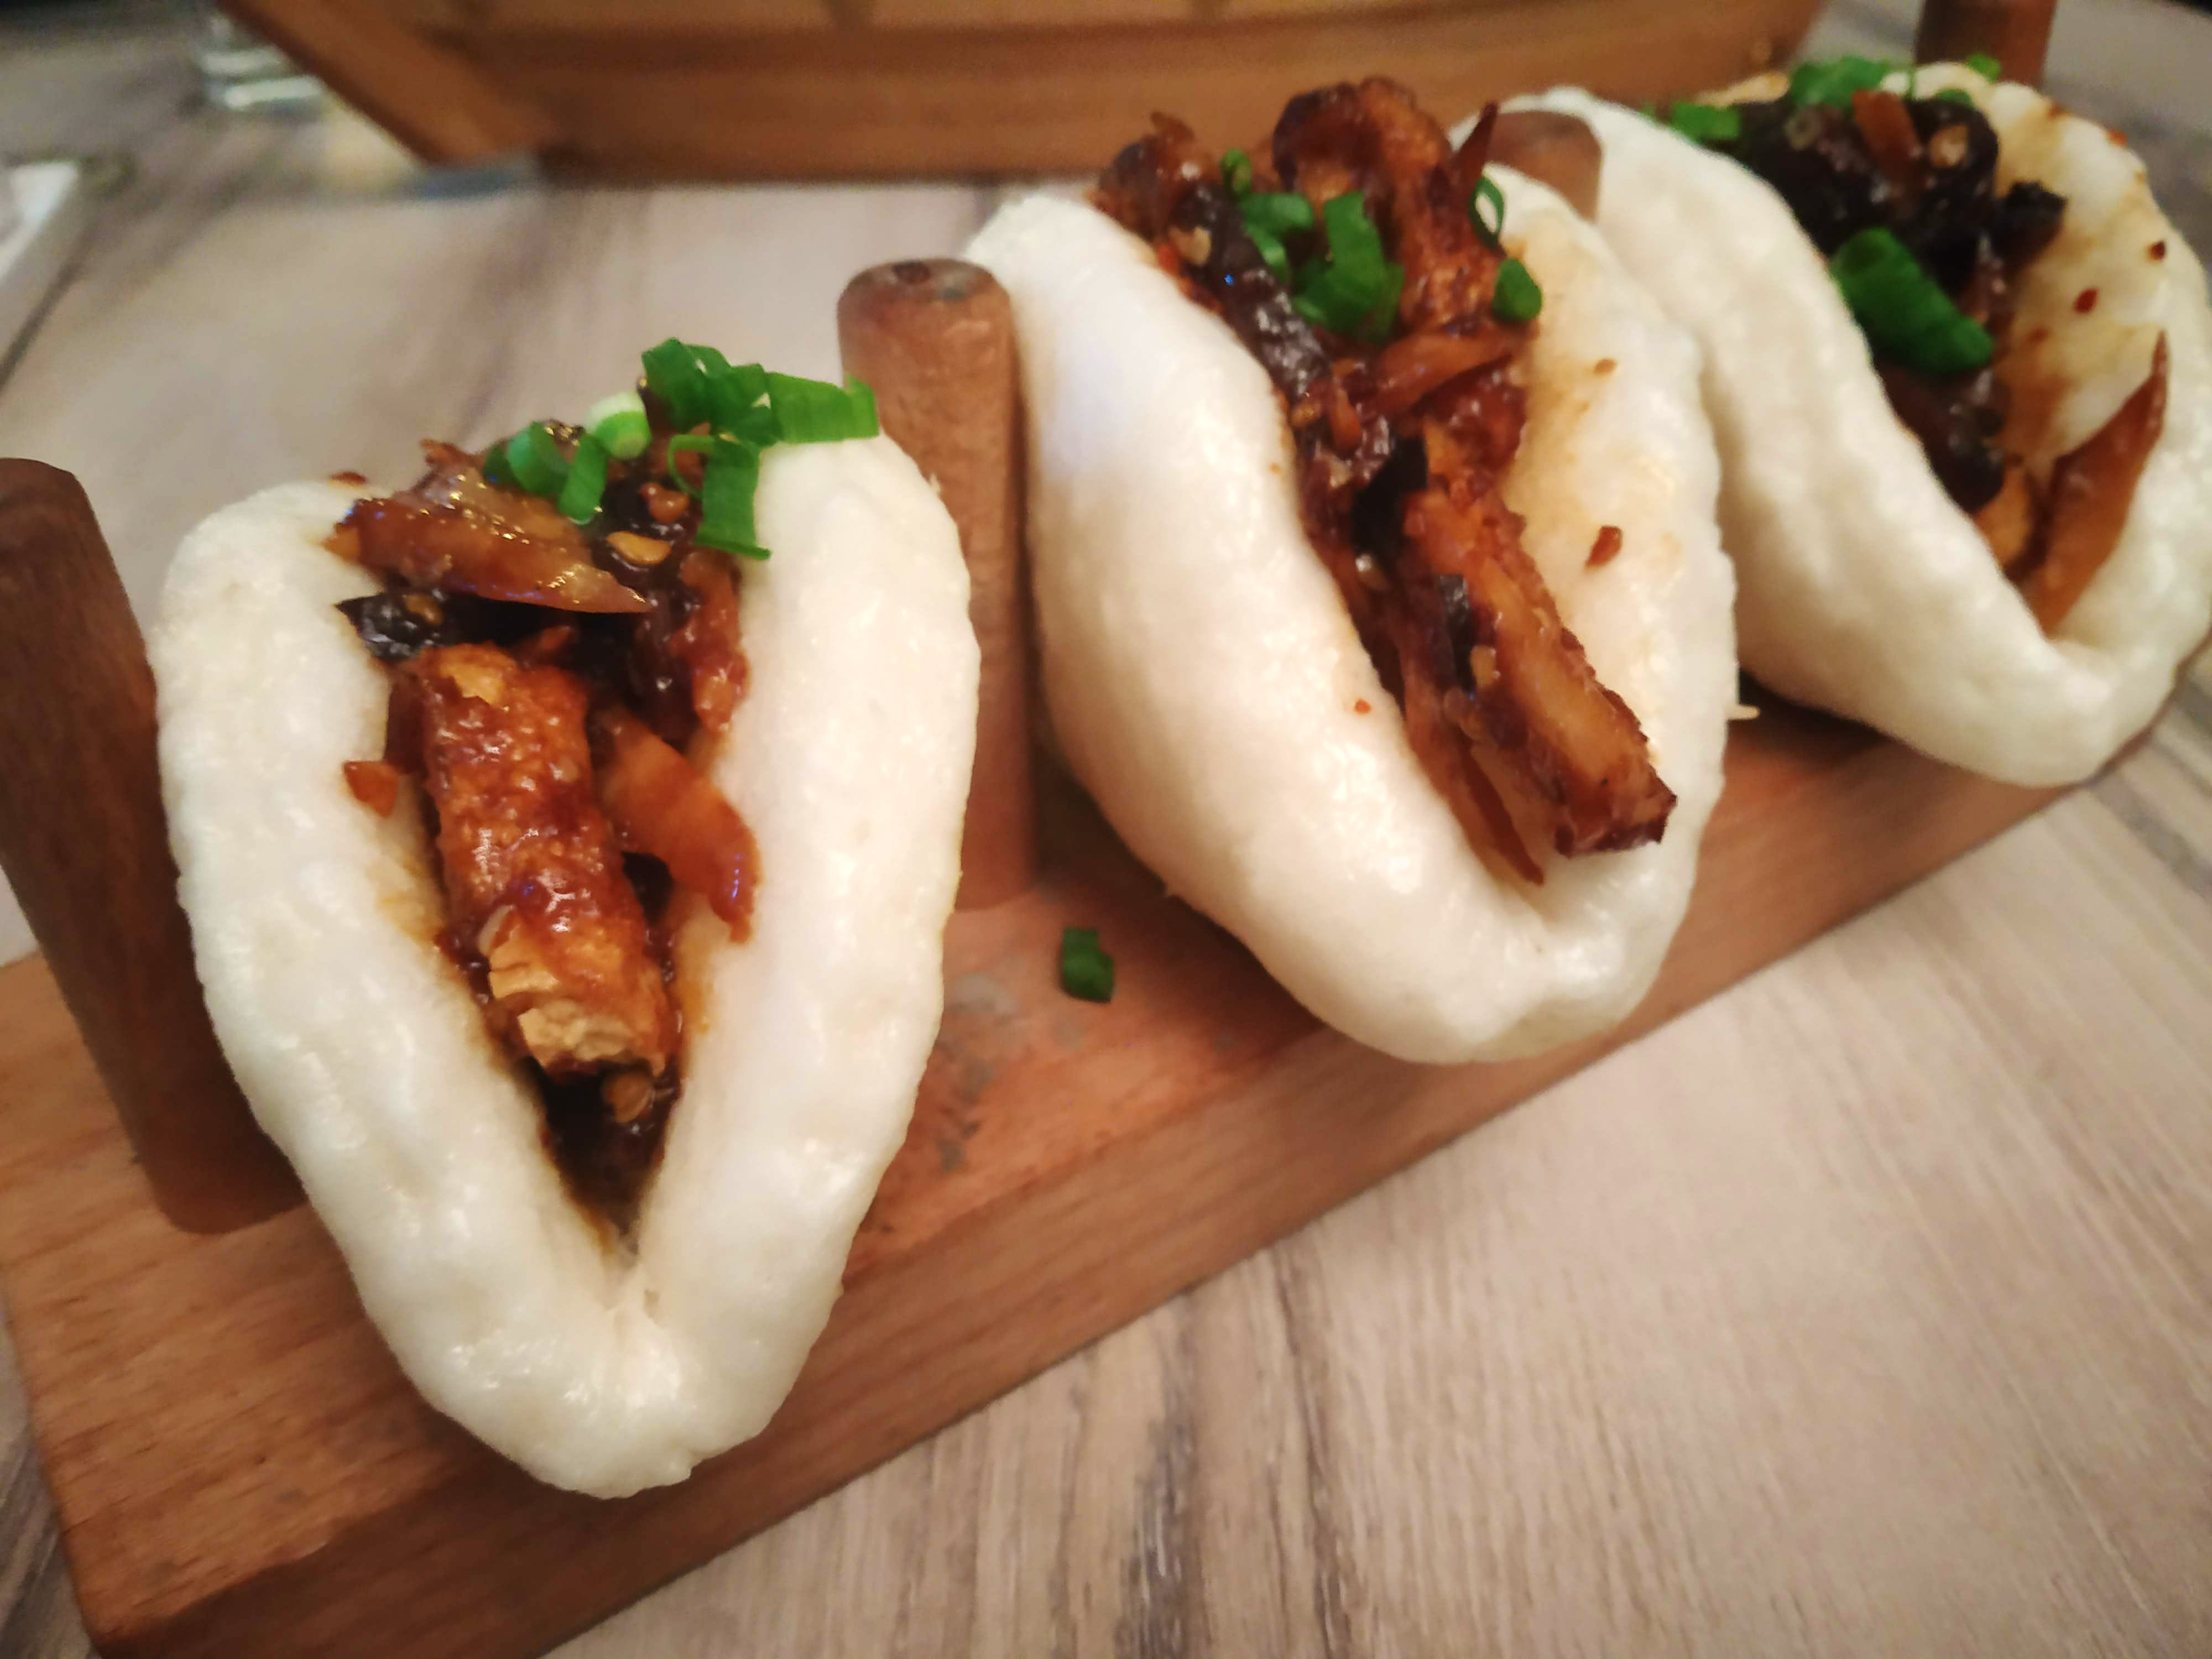 Dish,Food,Cuisine,Ingredient,Rou jia mo,Produce,Finger food,Comfort food,Snack,Choripán